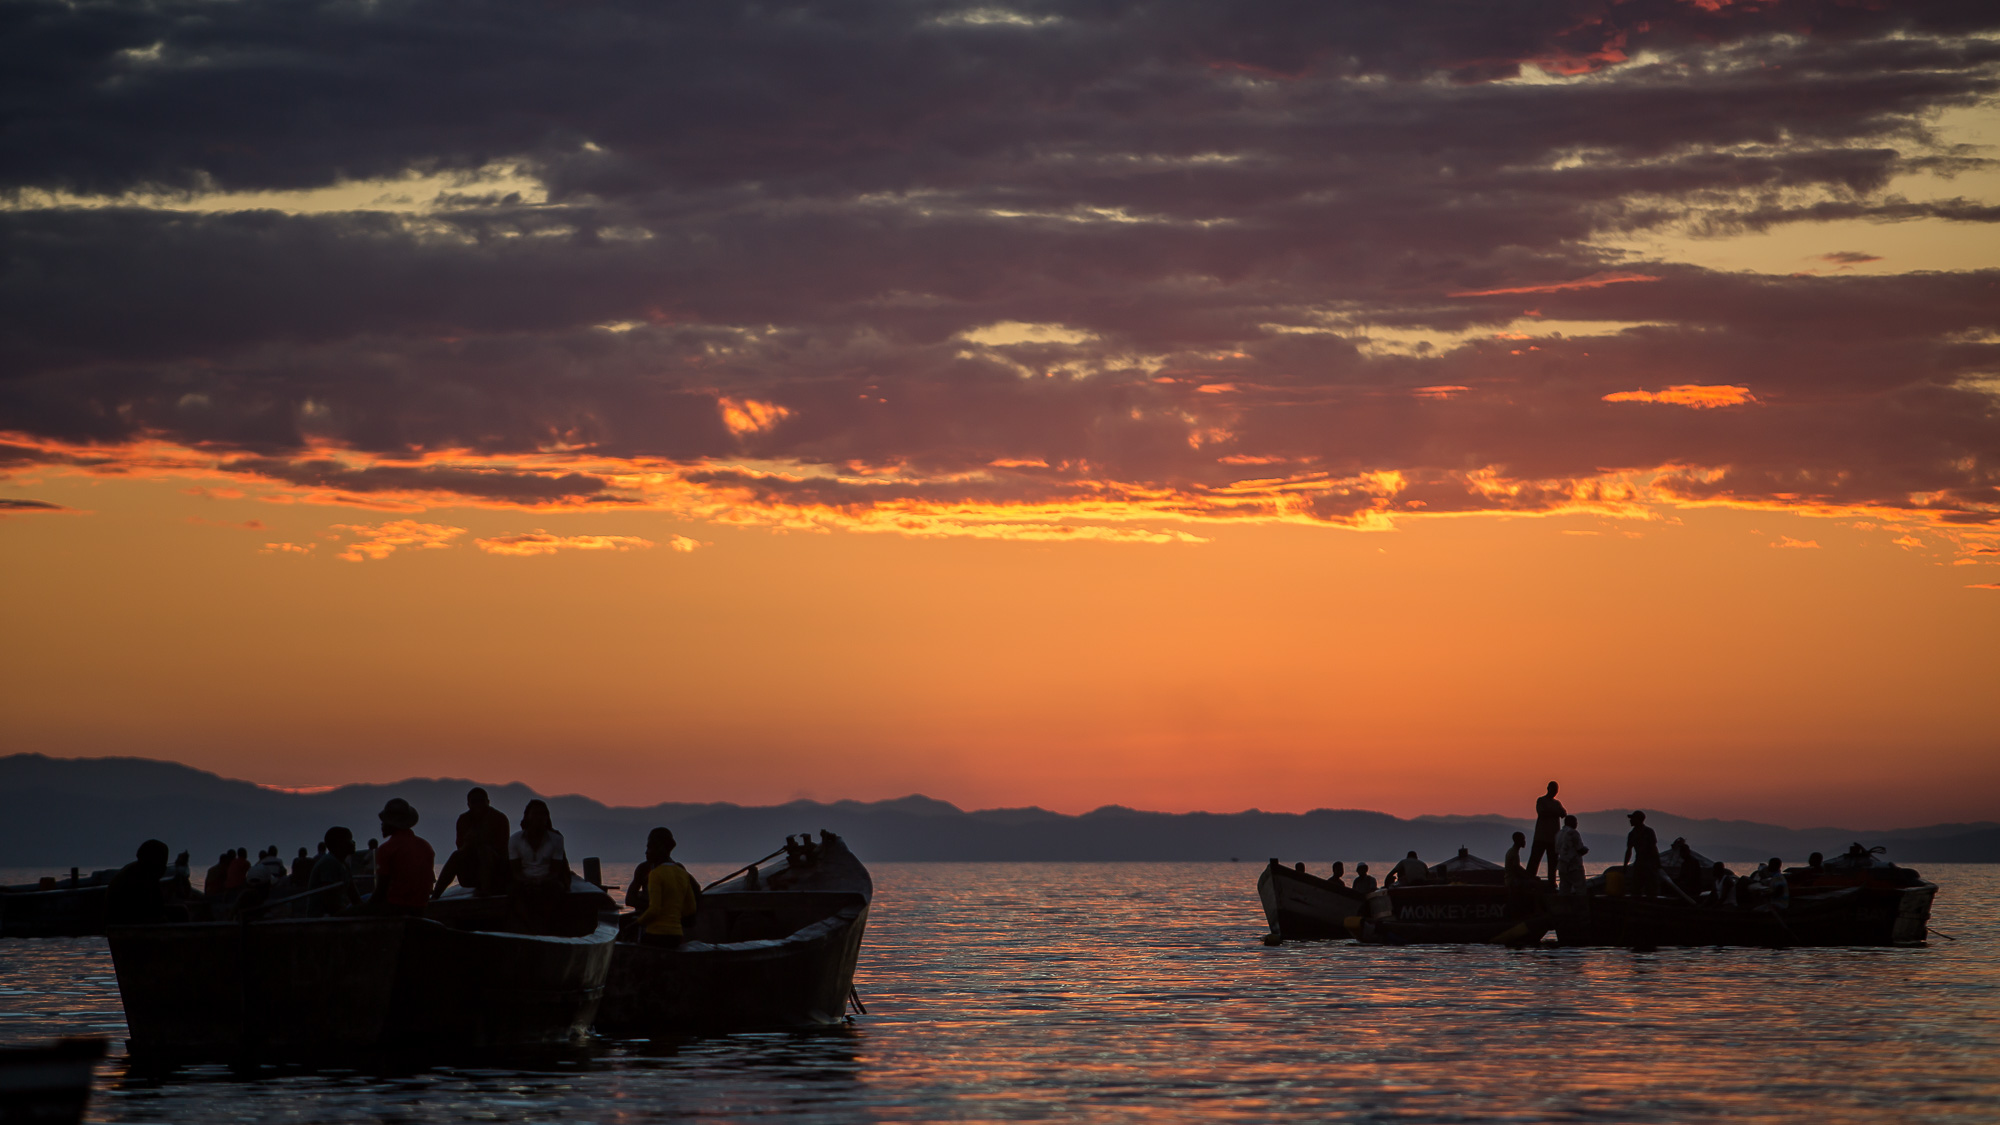 Fisherman in Masaka Bay prepare their boats for the nights fishi